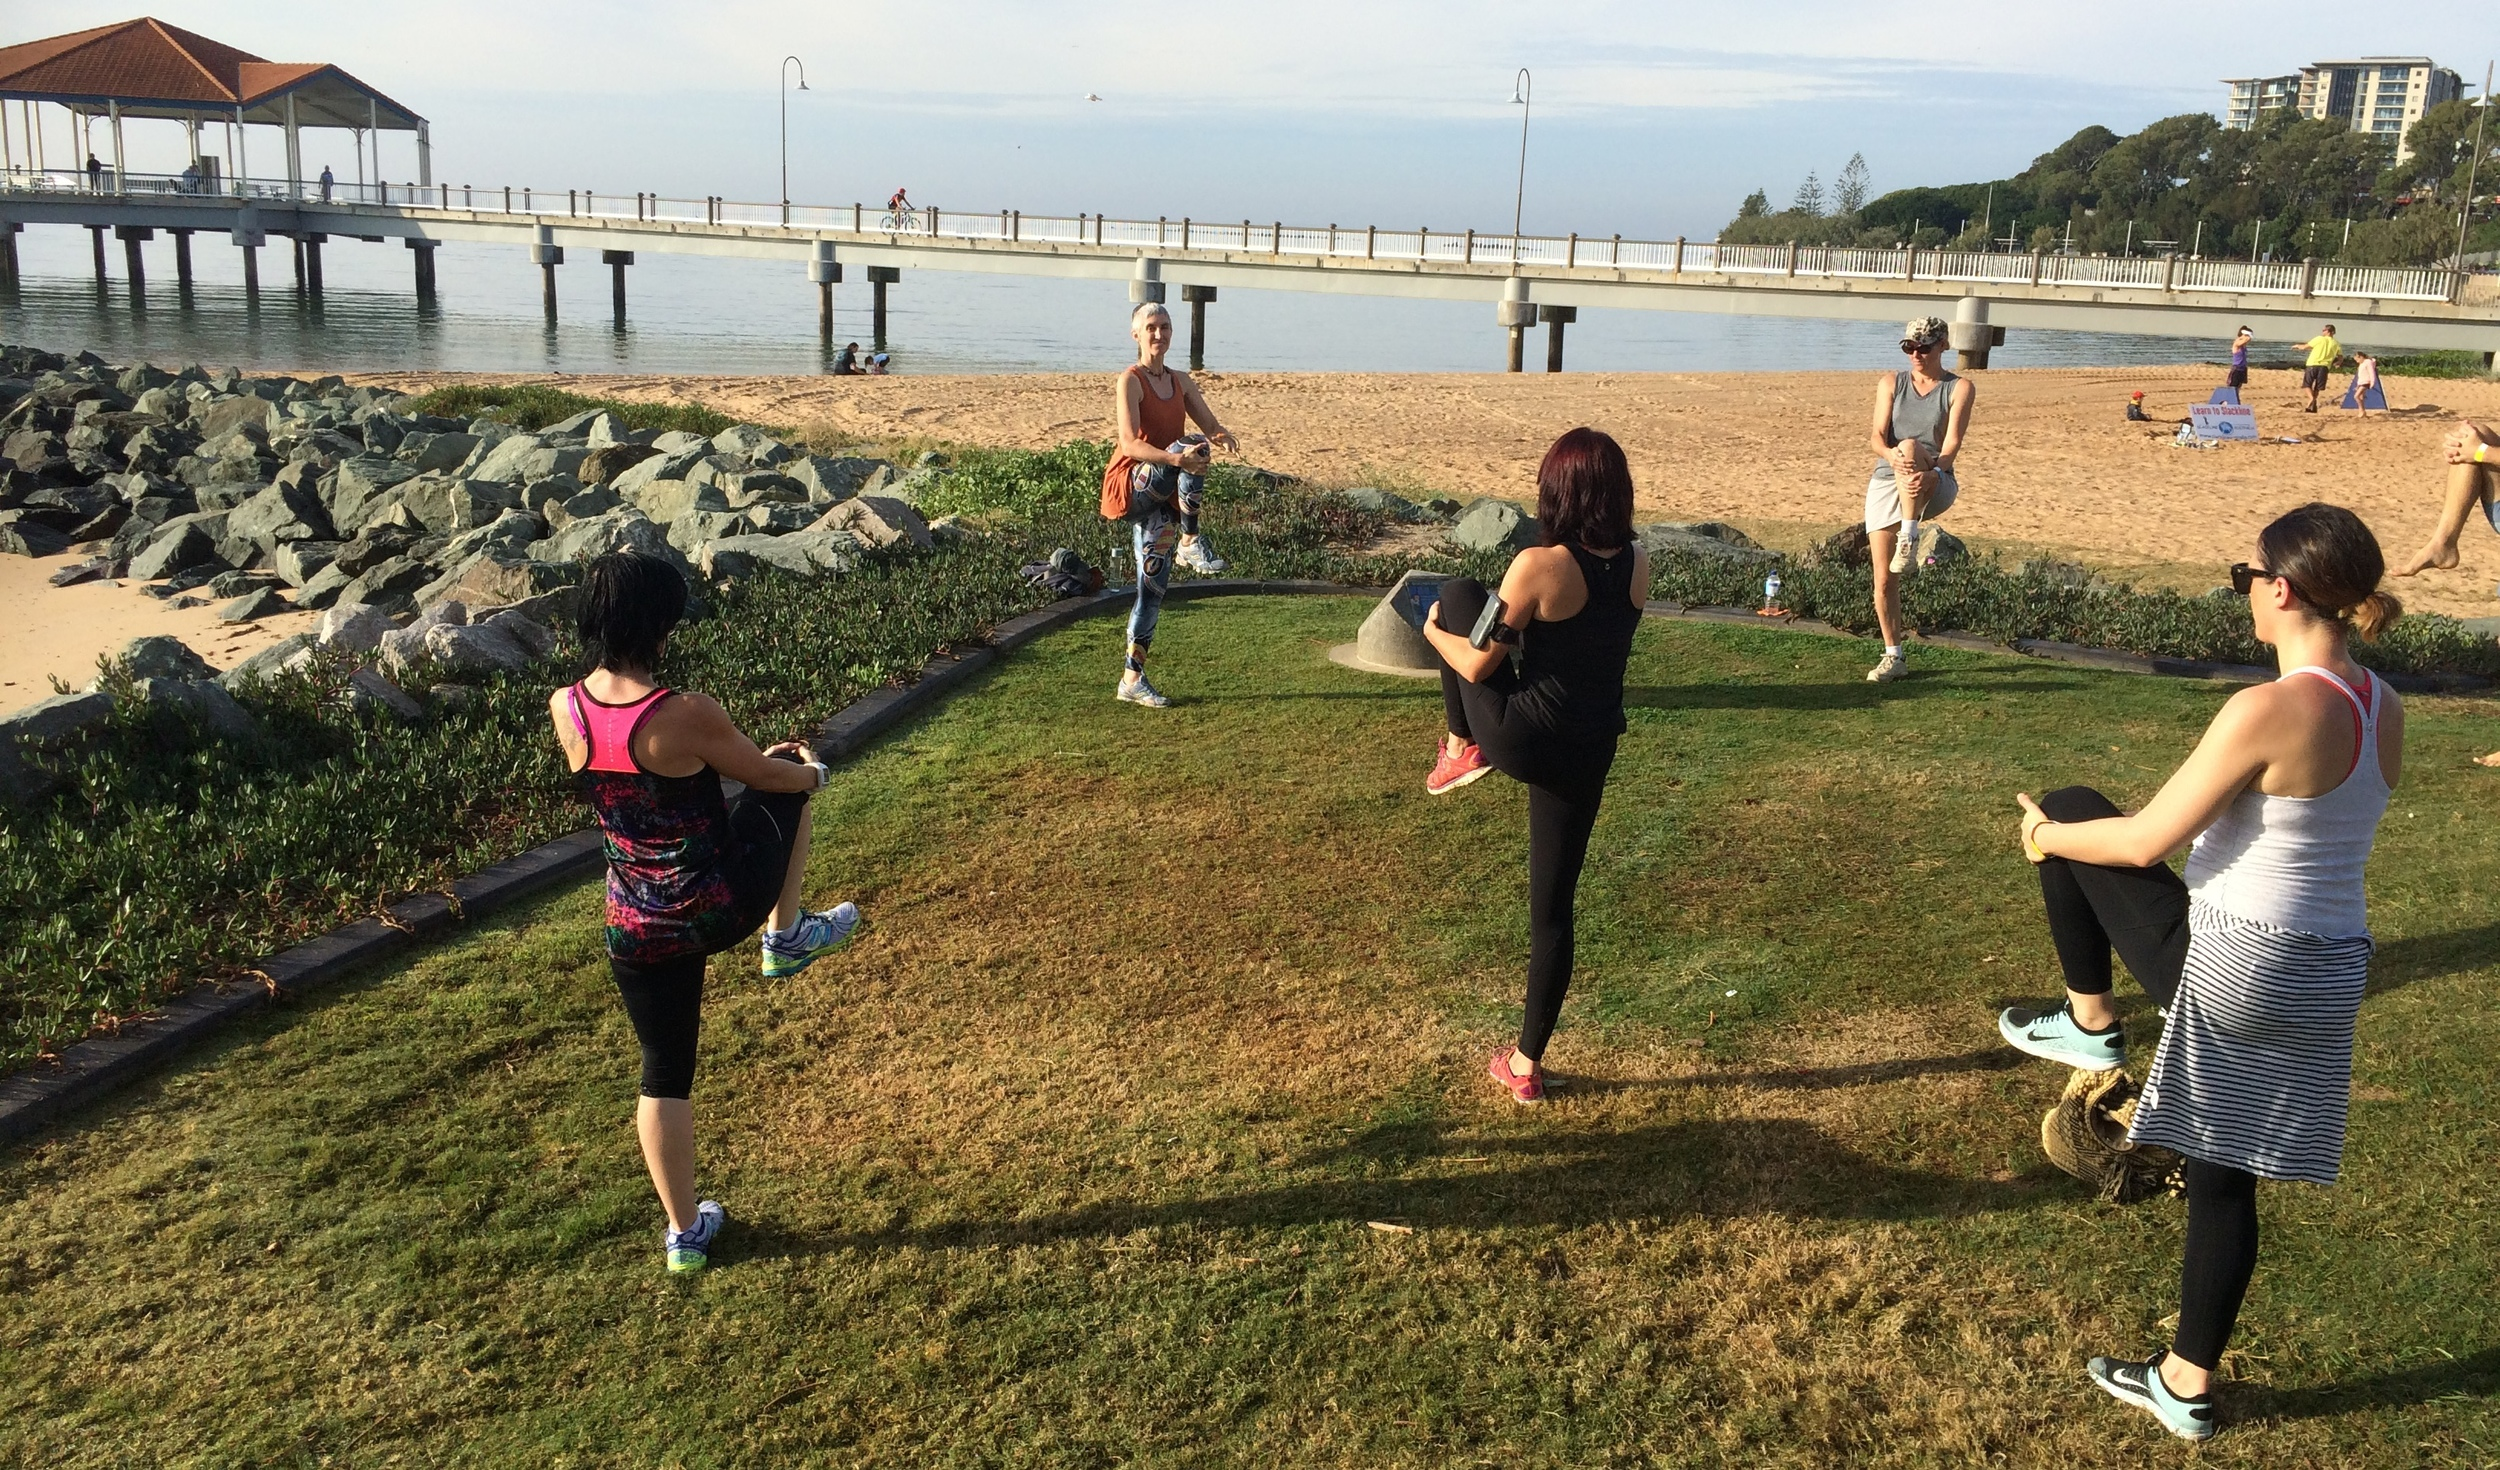 Another wave of runners cooling down with the slacklining in the background